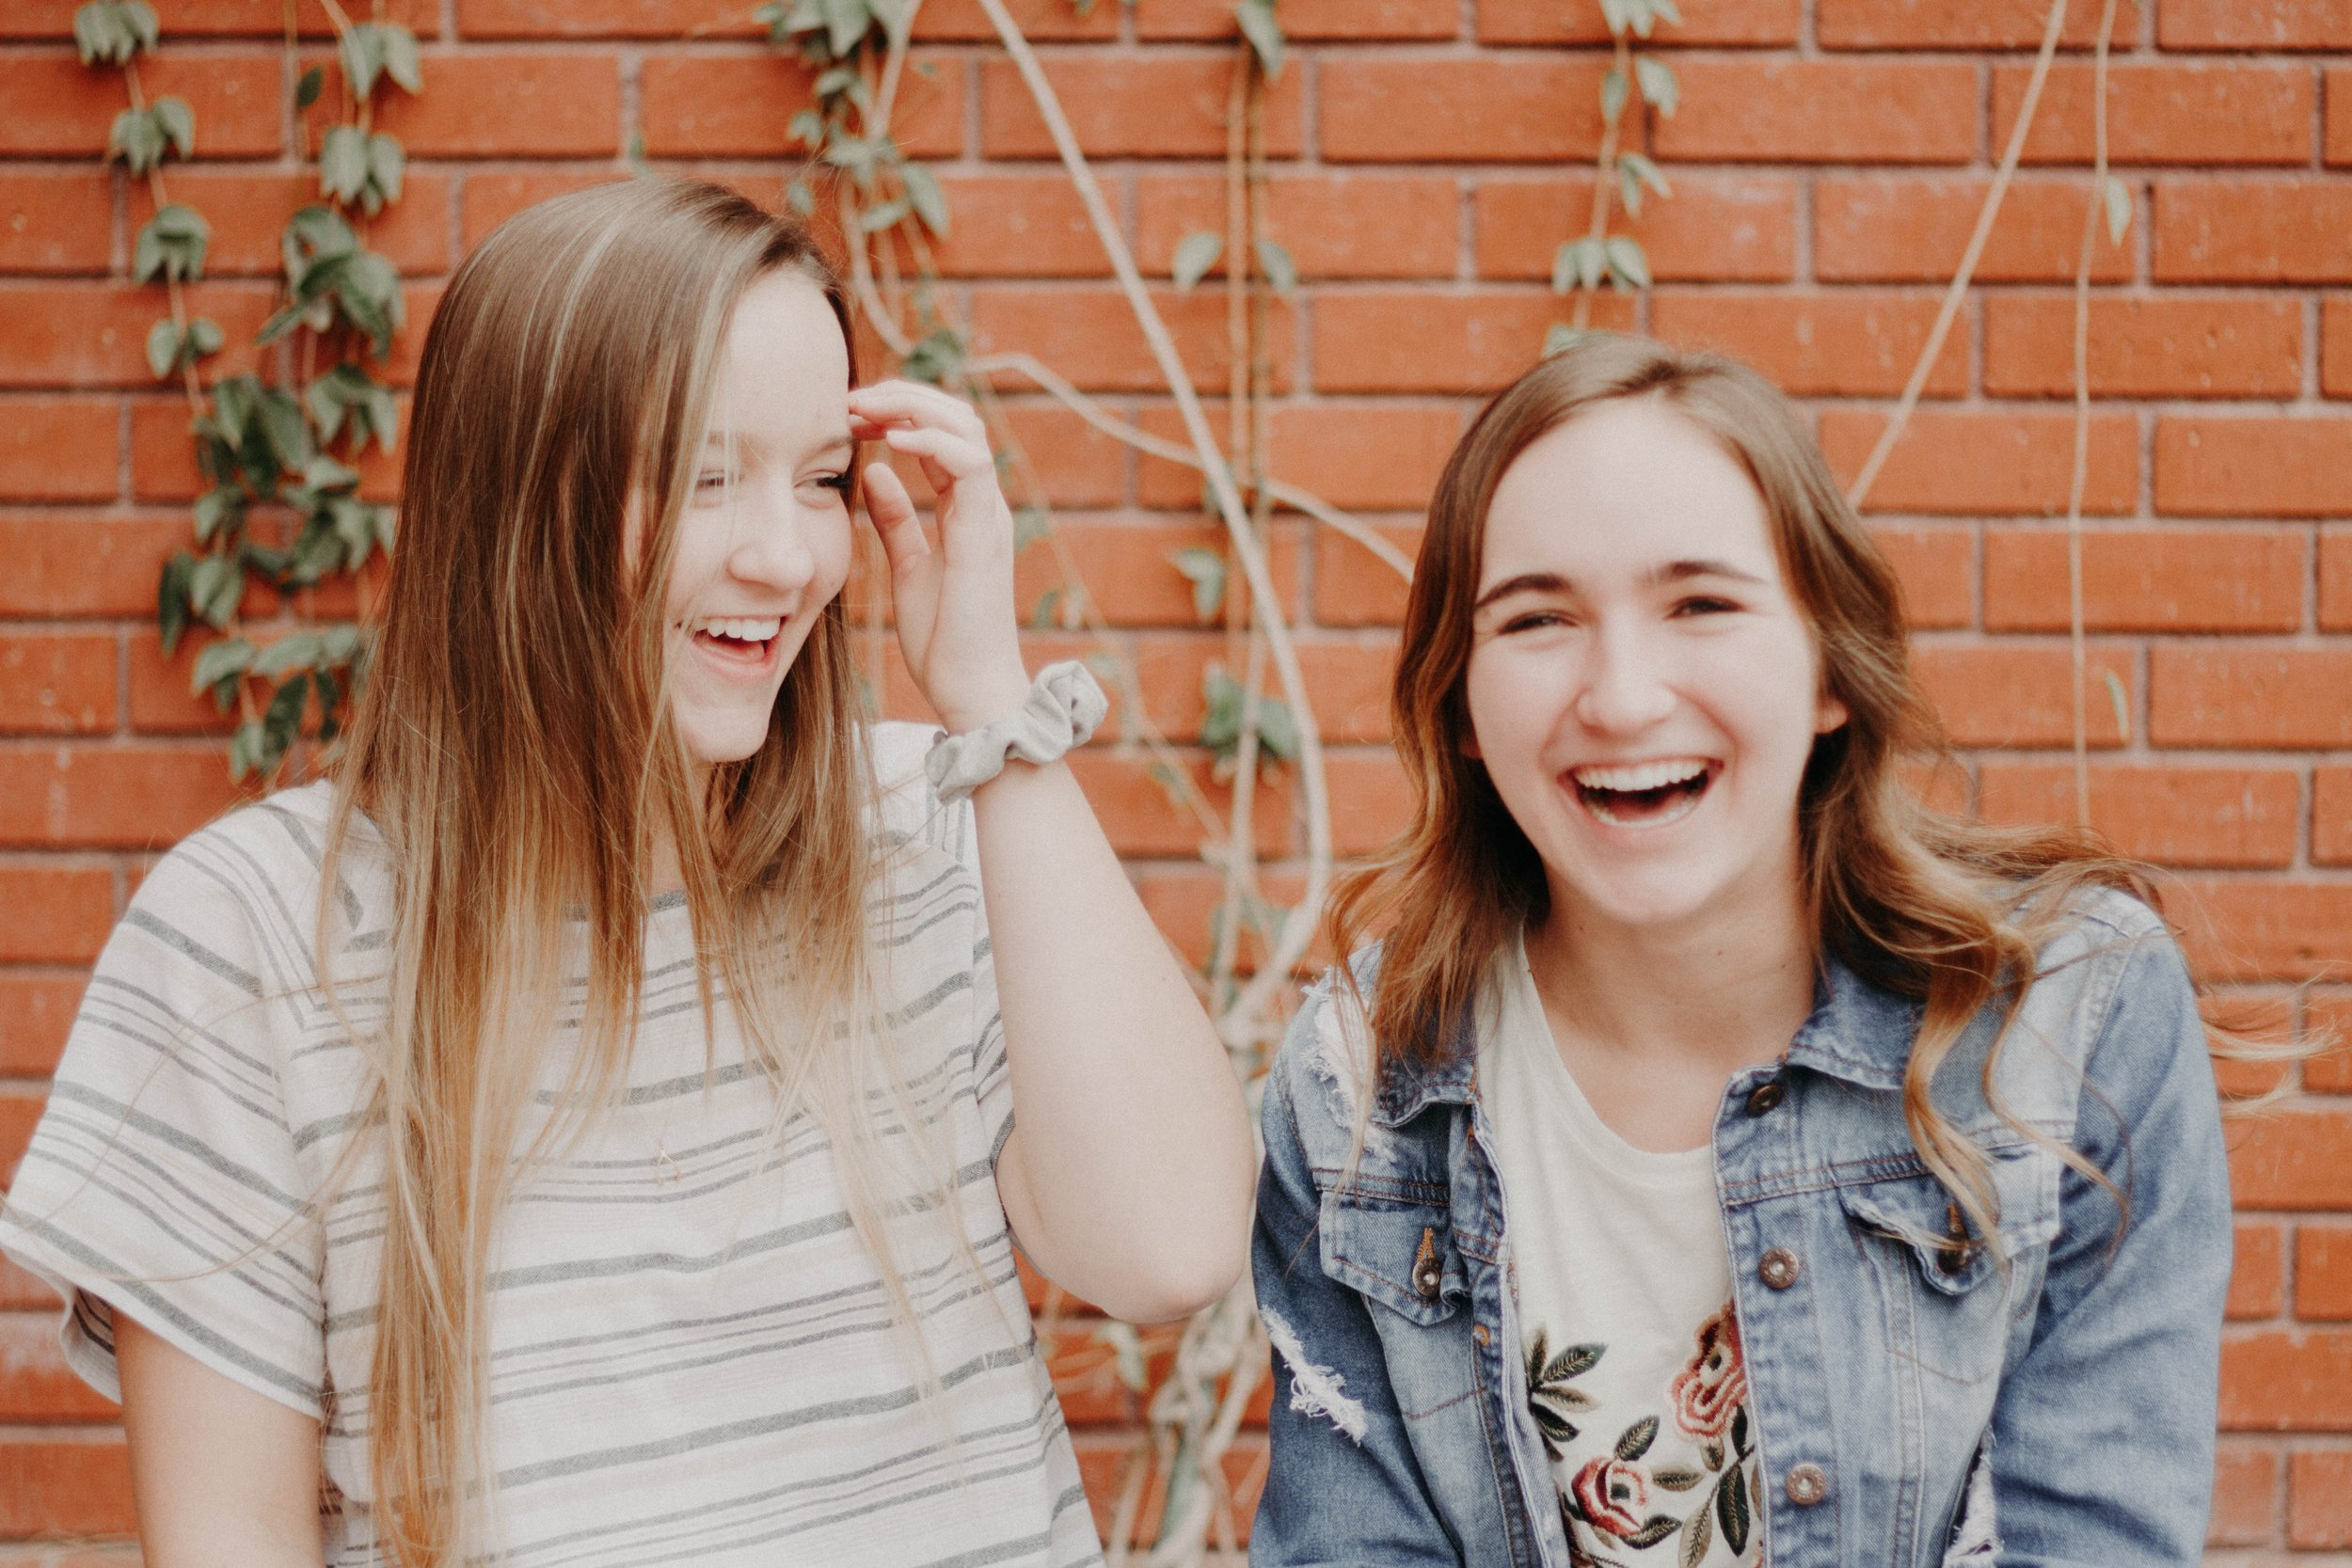 Counseling for teenage depression and anxiety - what to expect from your first session with a counselor.